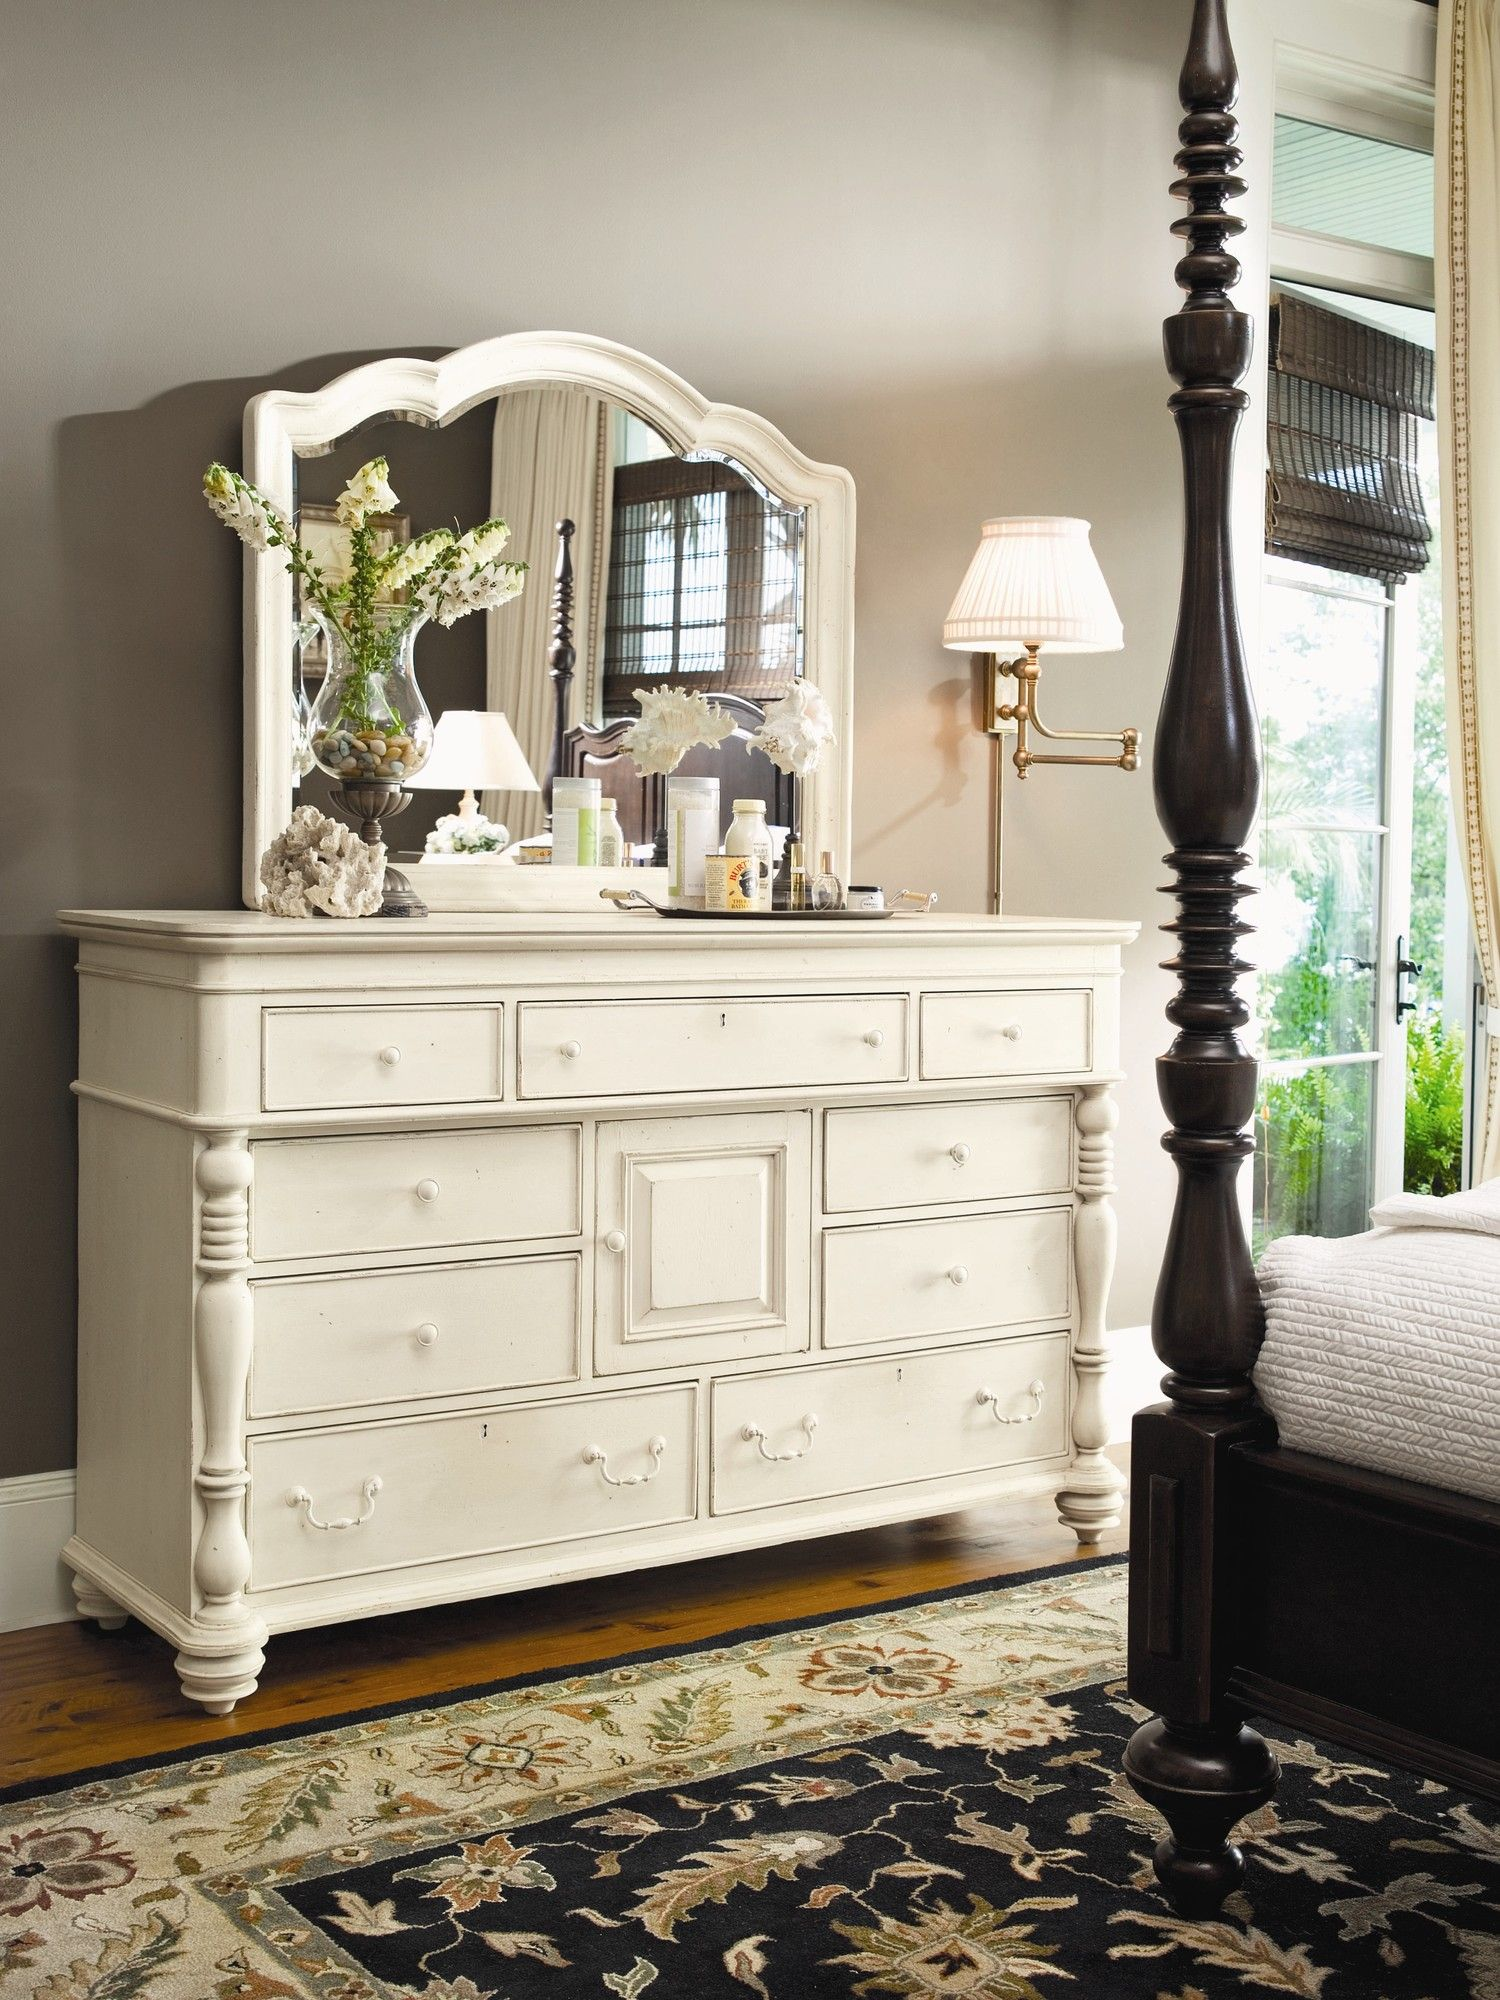 Paula deen home steel magnolia 9 drawer dresser reviews - Steel magnolia bedroom furniture ...